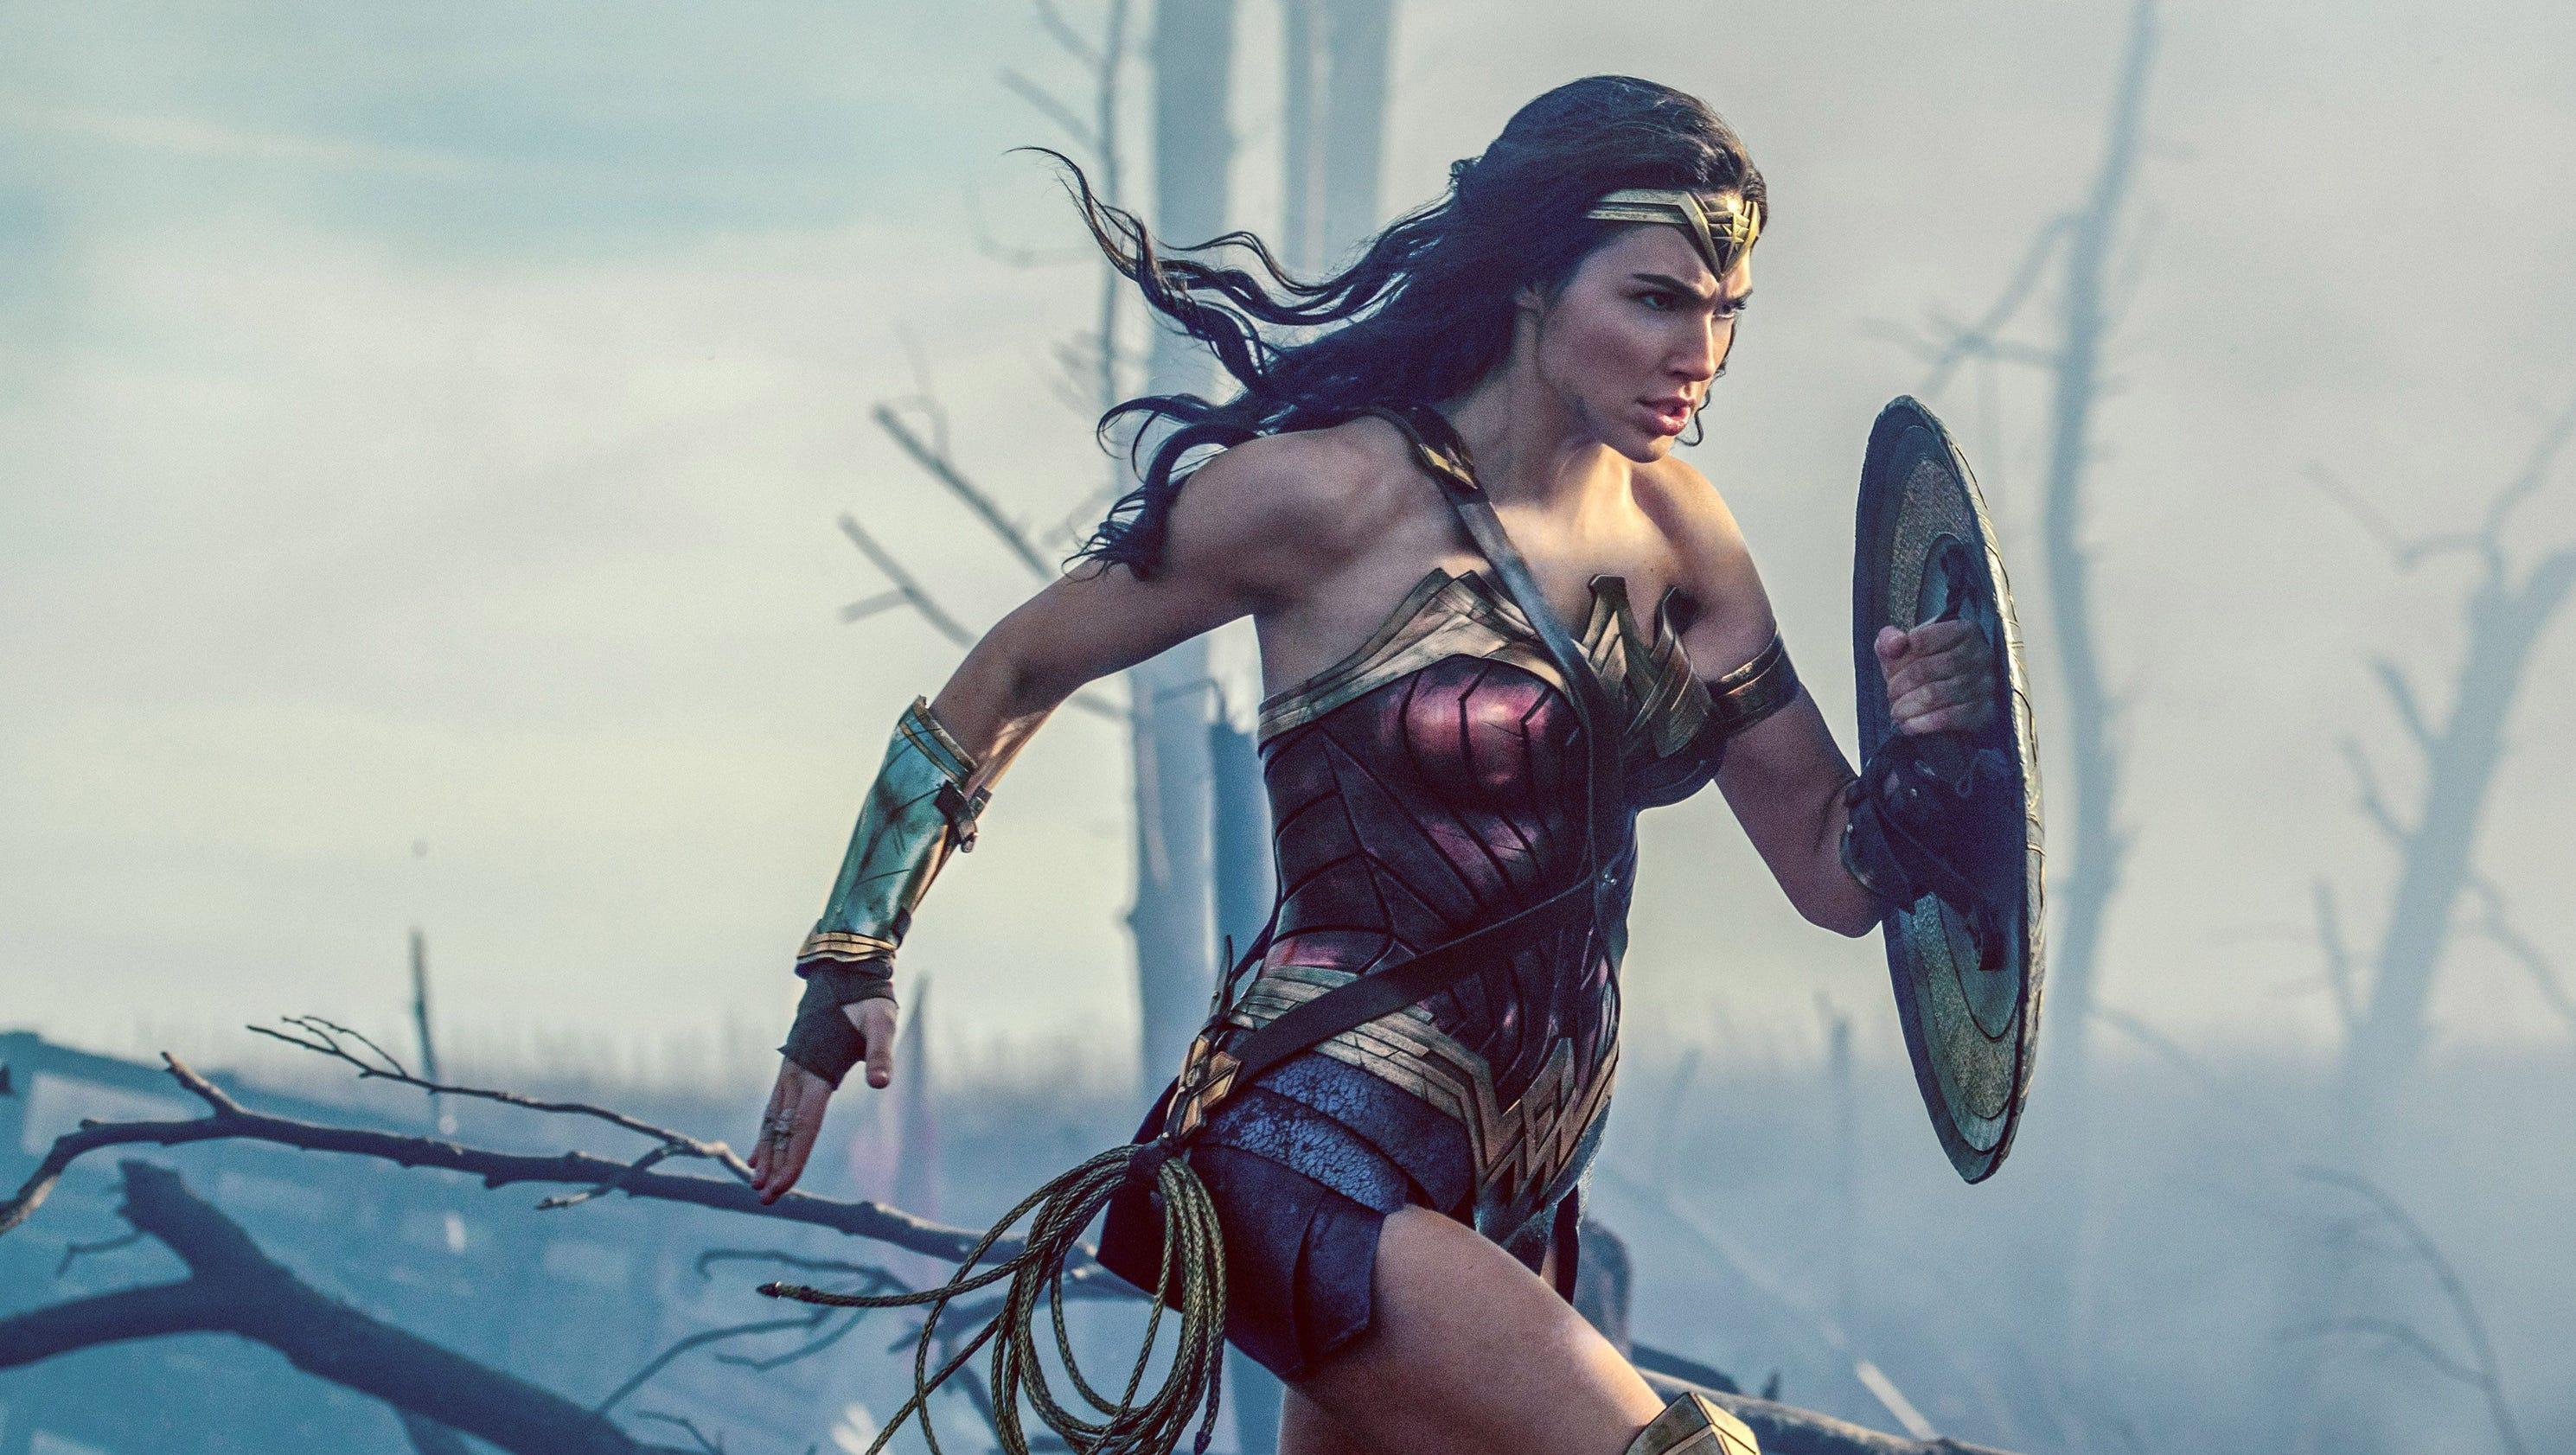 Response to a twitter troll who shamed her for not wearing makeup - Why Female Superhero Movies Failed Until Now